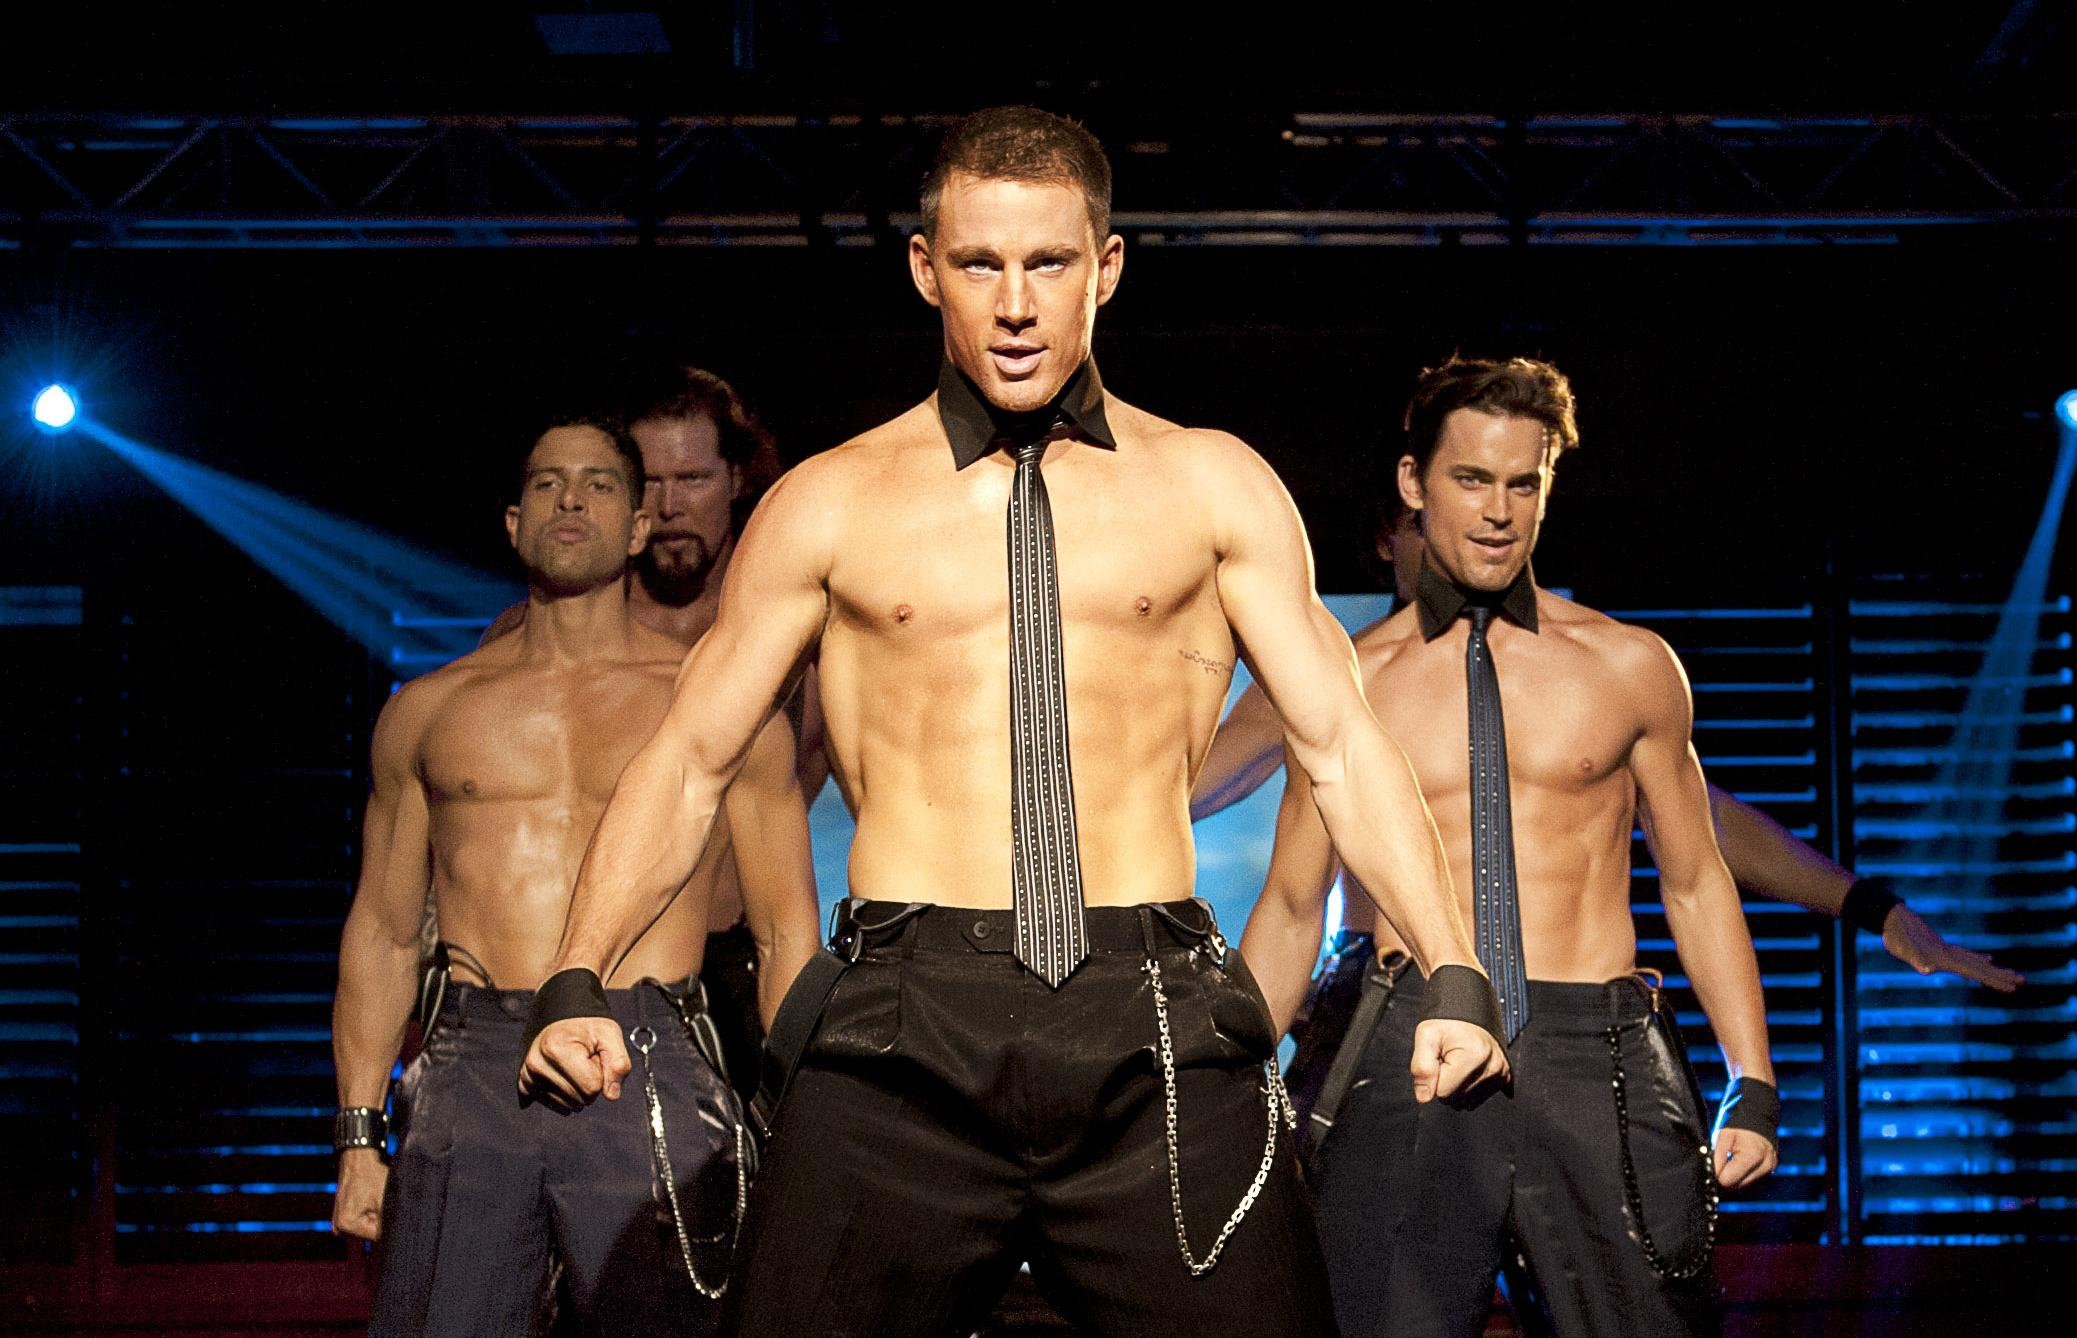 Il sogno americano di Magic Mike